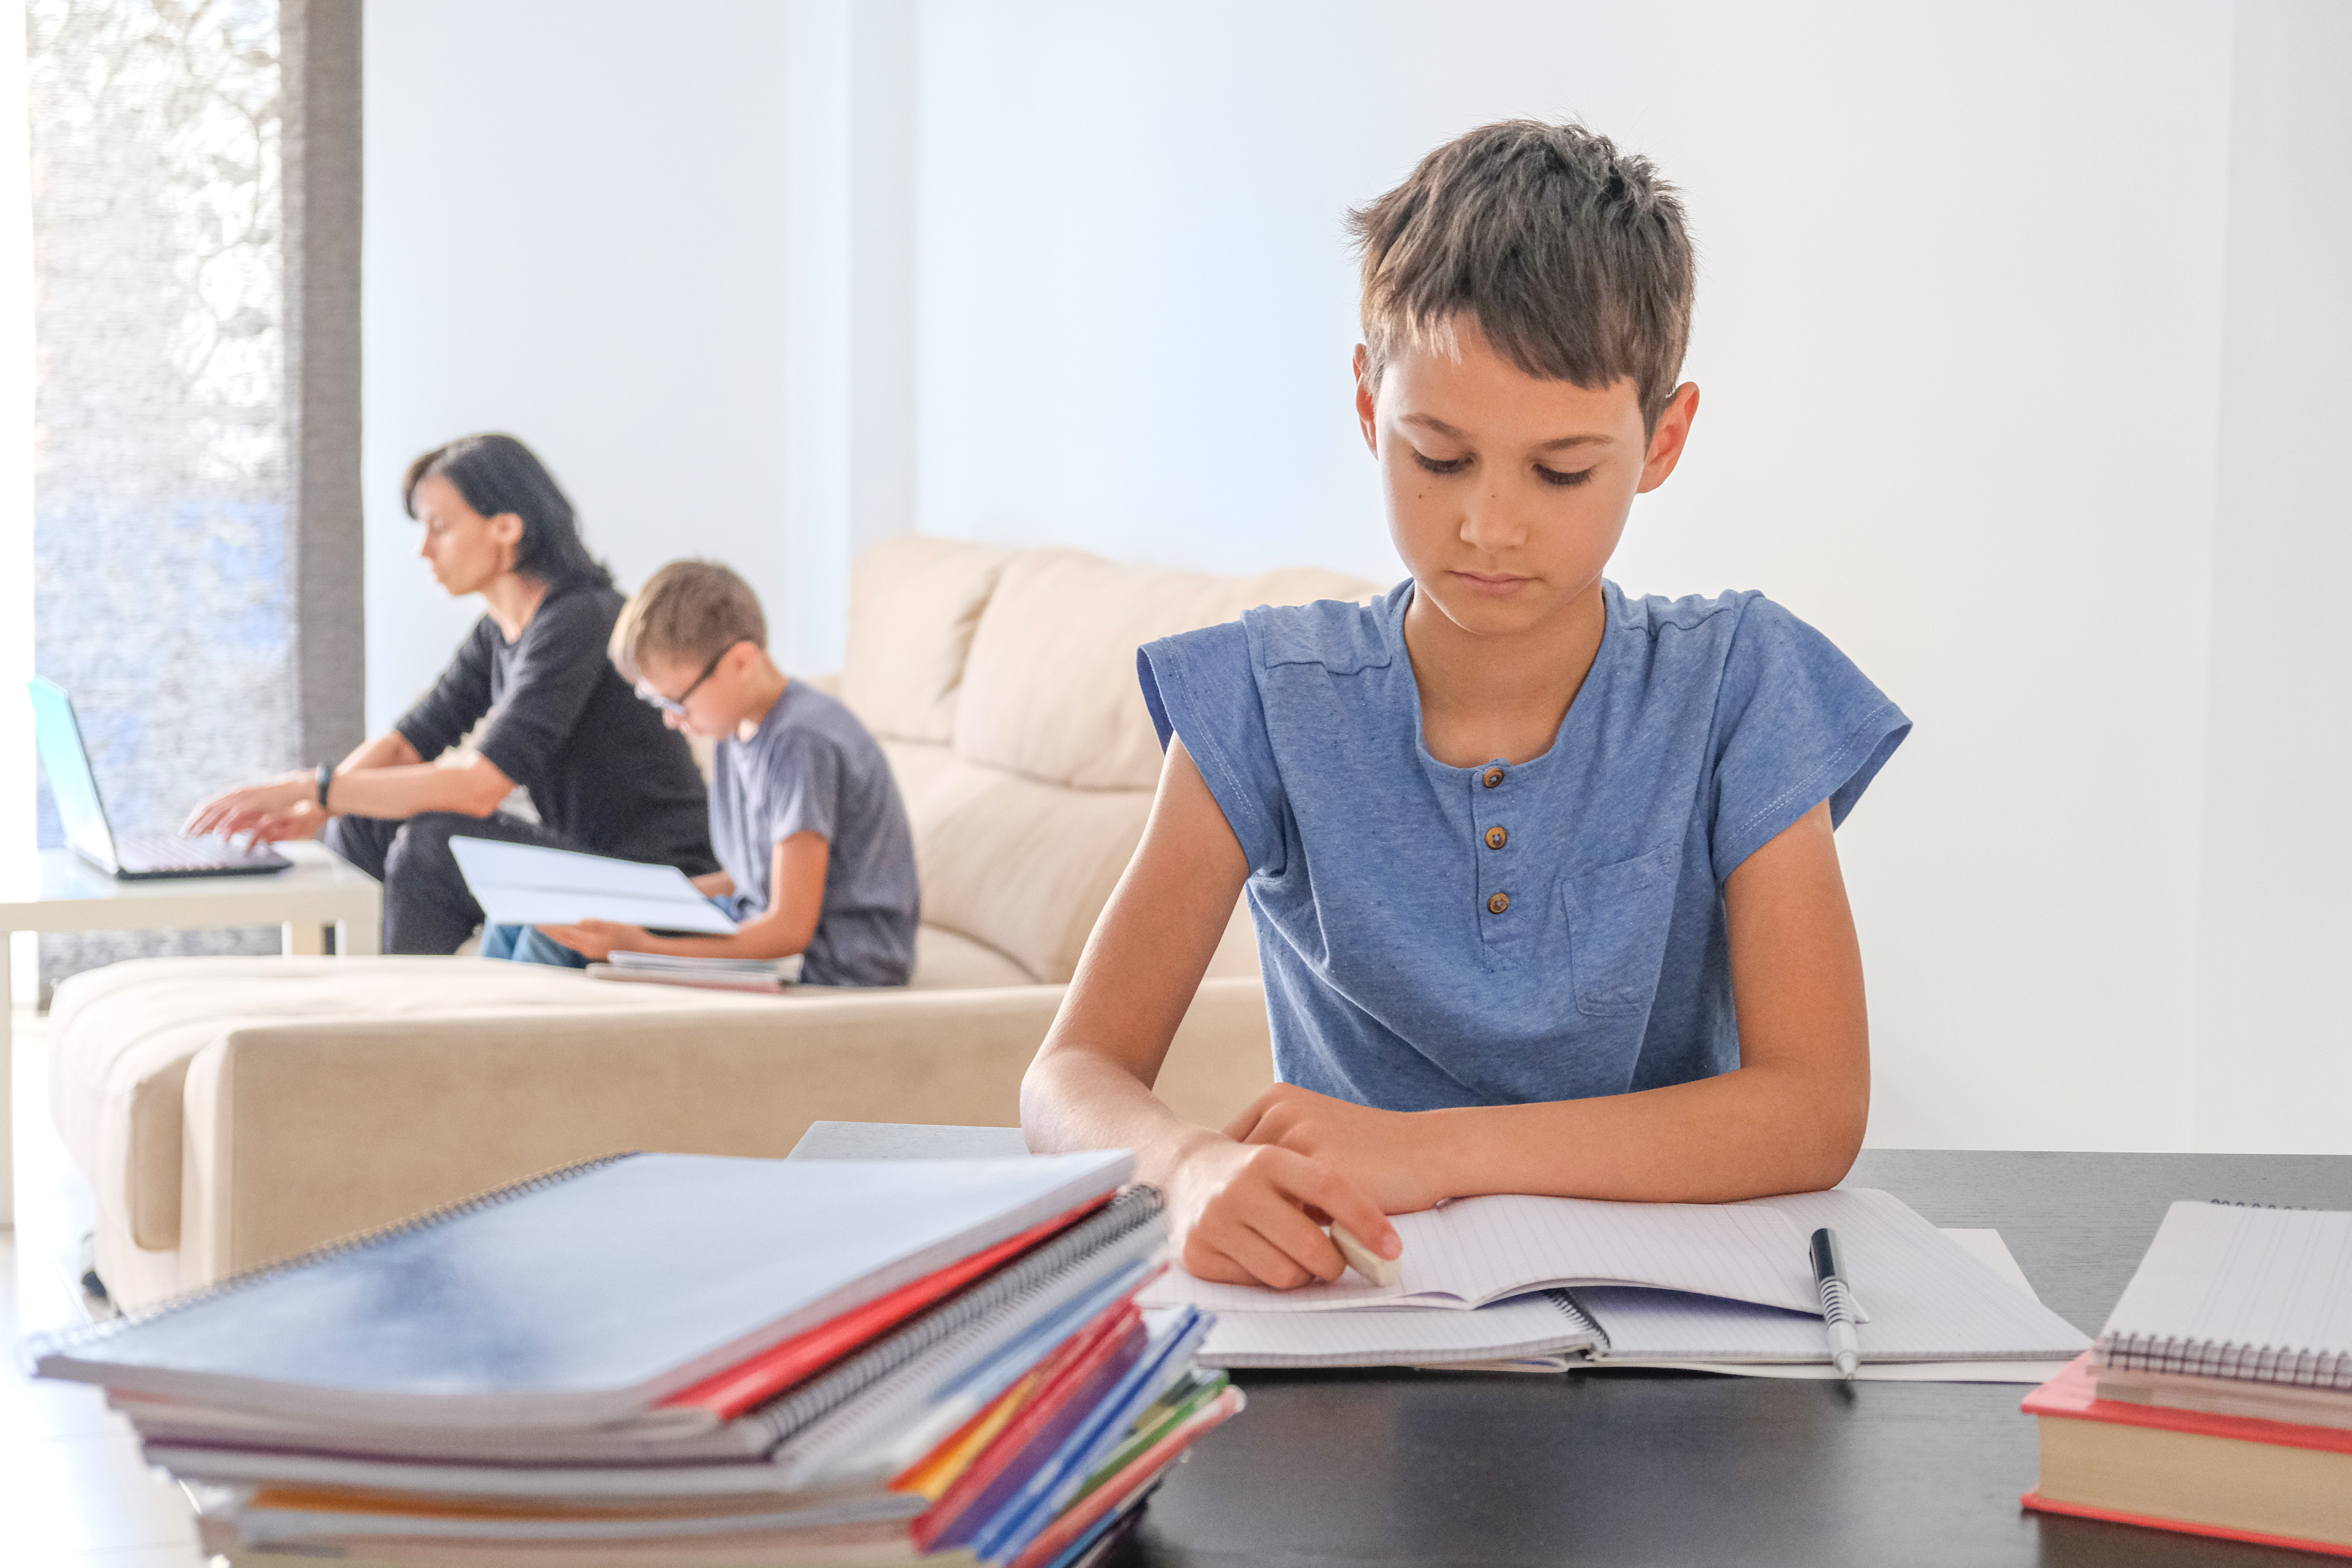 at home distance learning for kids and parents.